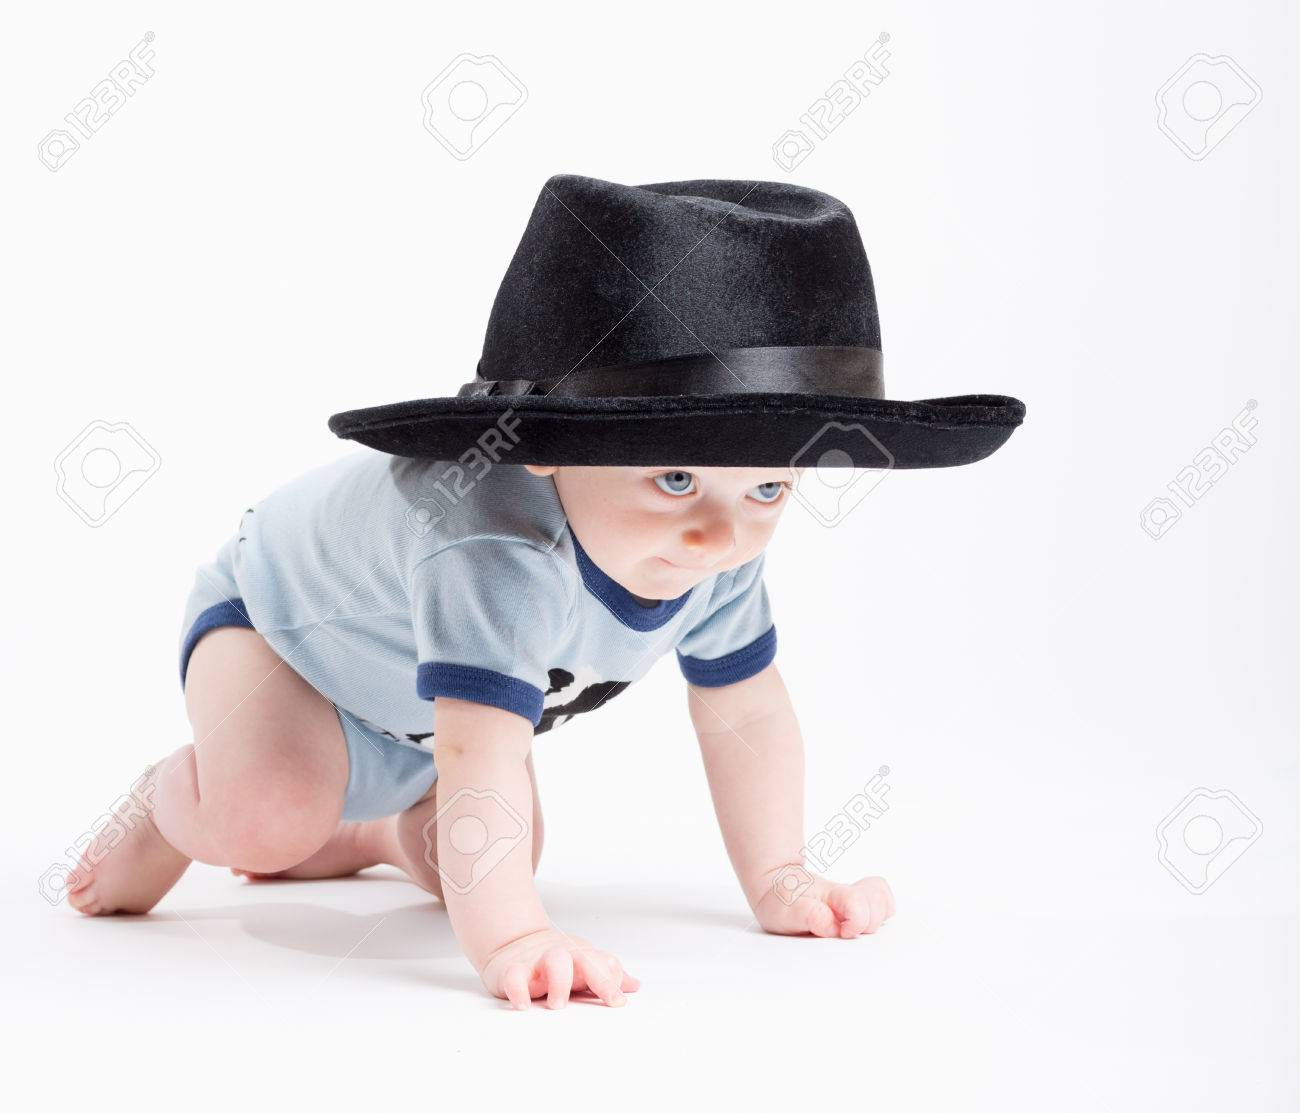 a 6 month old baby crawls on a white background wearing a black fedora hat  Stock cc2160505f0